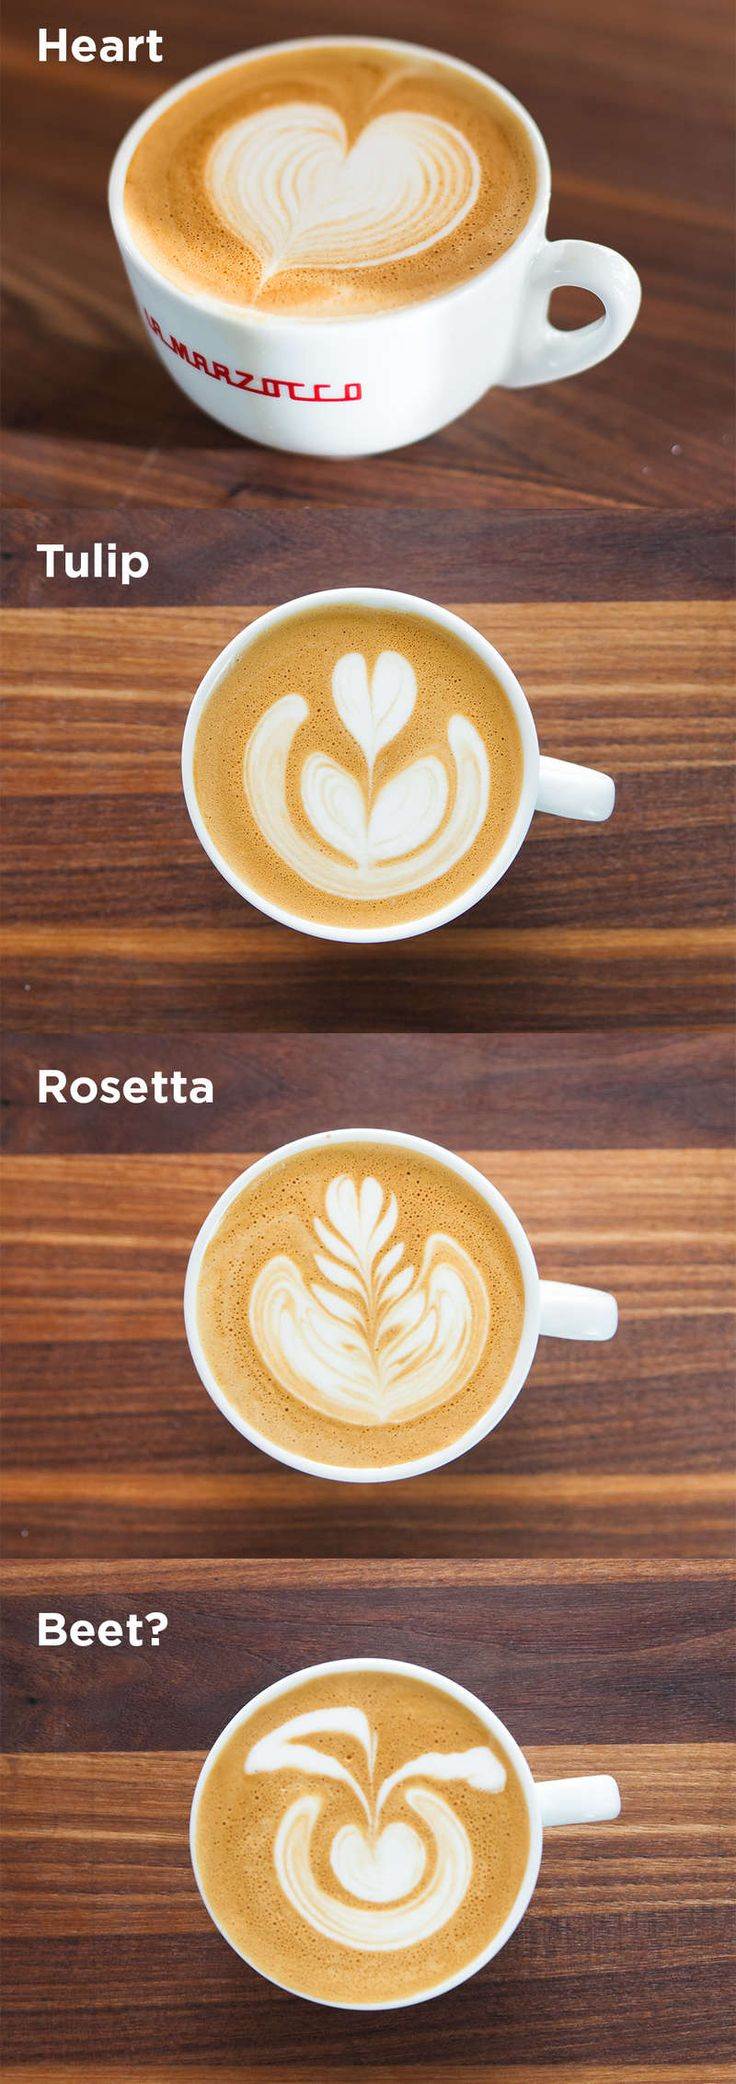 coffee latte art Download coffee latte art stock images high-quality stock photos about coffee collage, cup coffee, coffee cup, coffee beans.